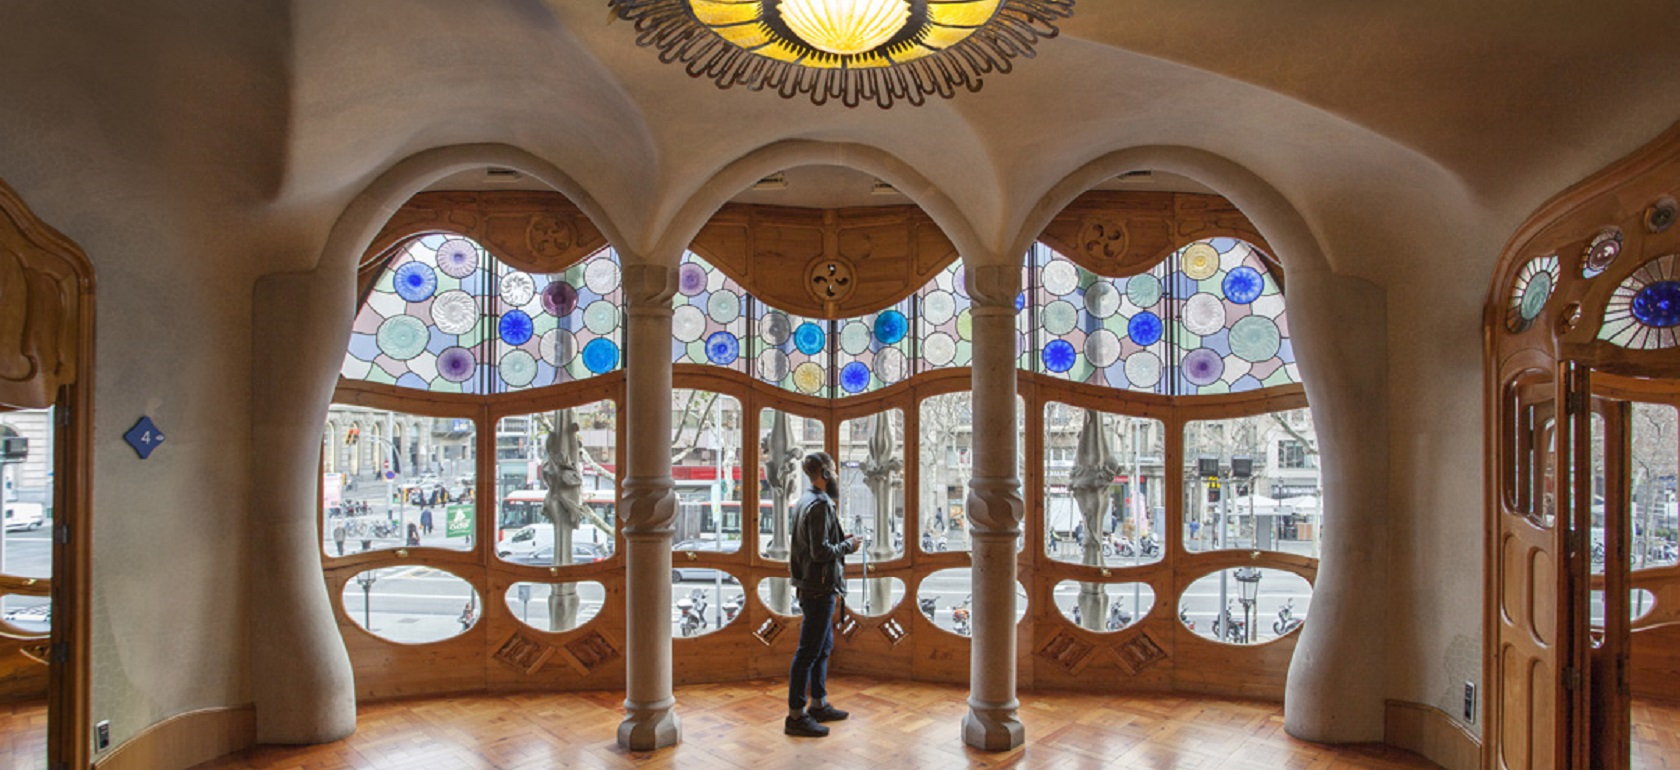 Casa Batll  Be the first